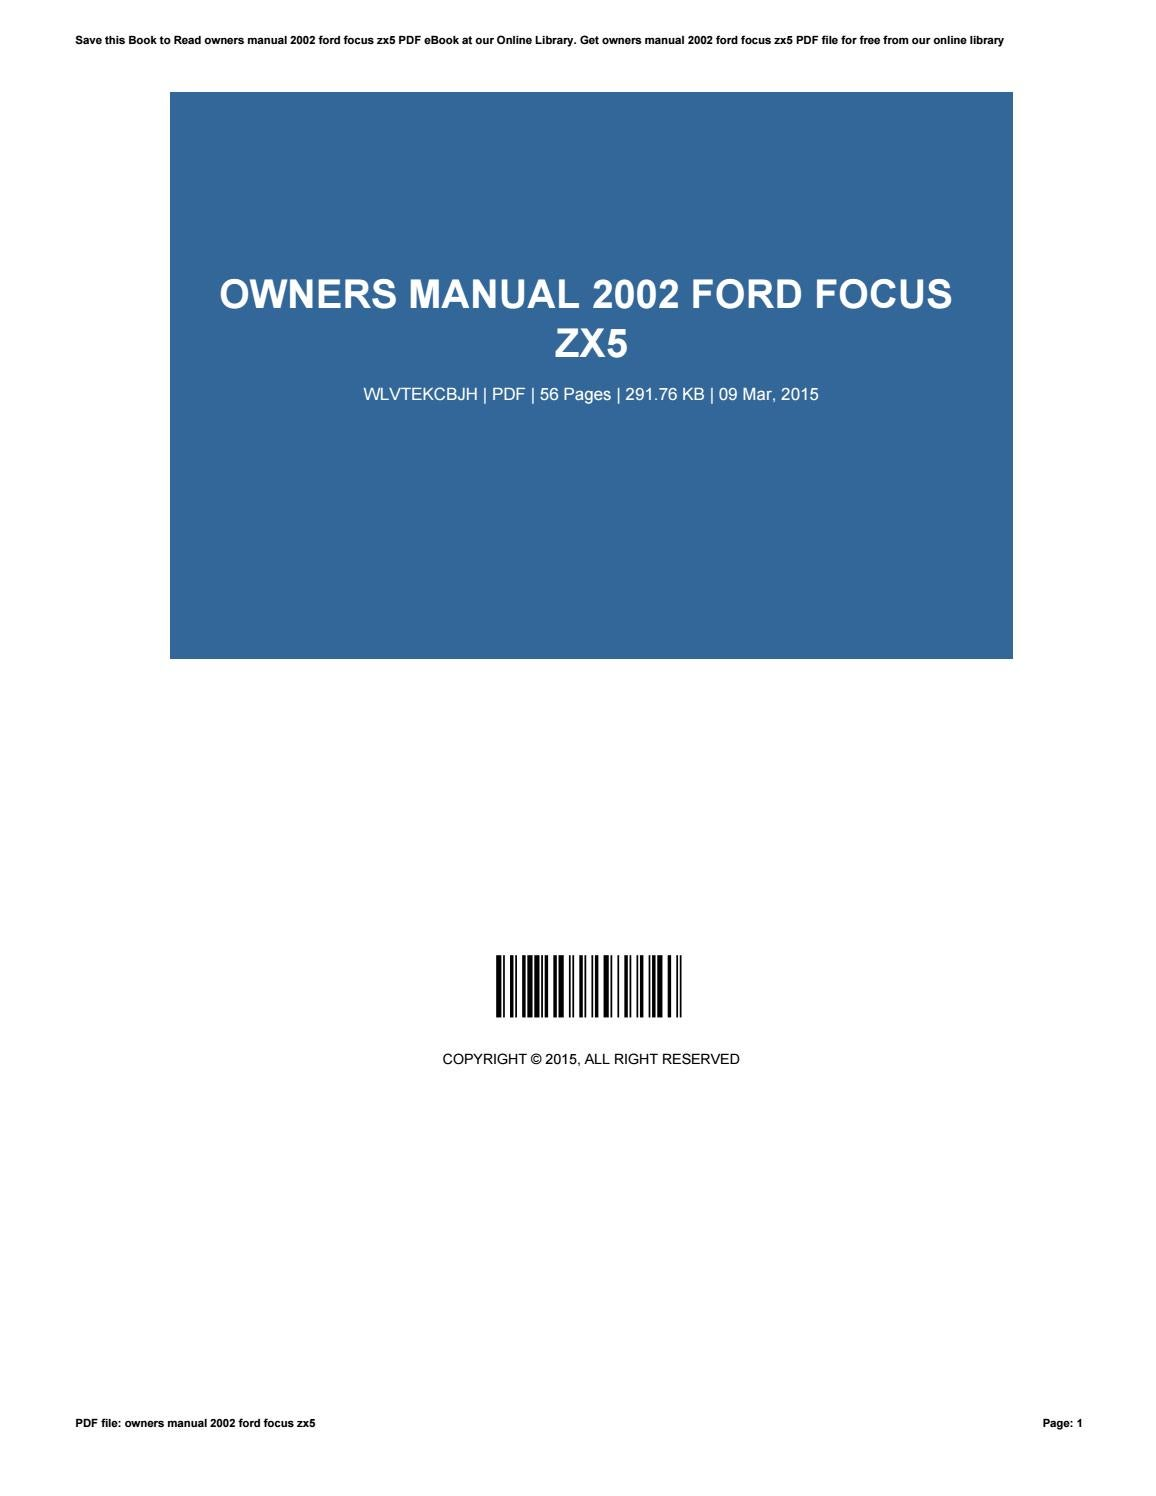 2002 ford focus owners manual pdf